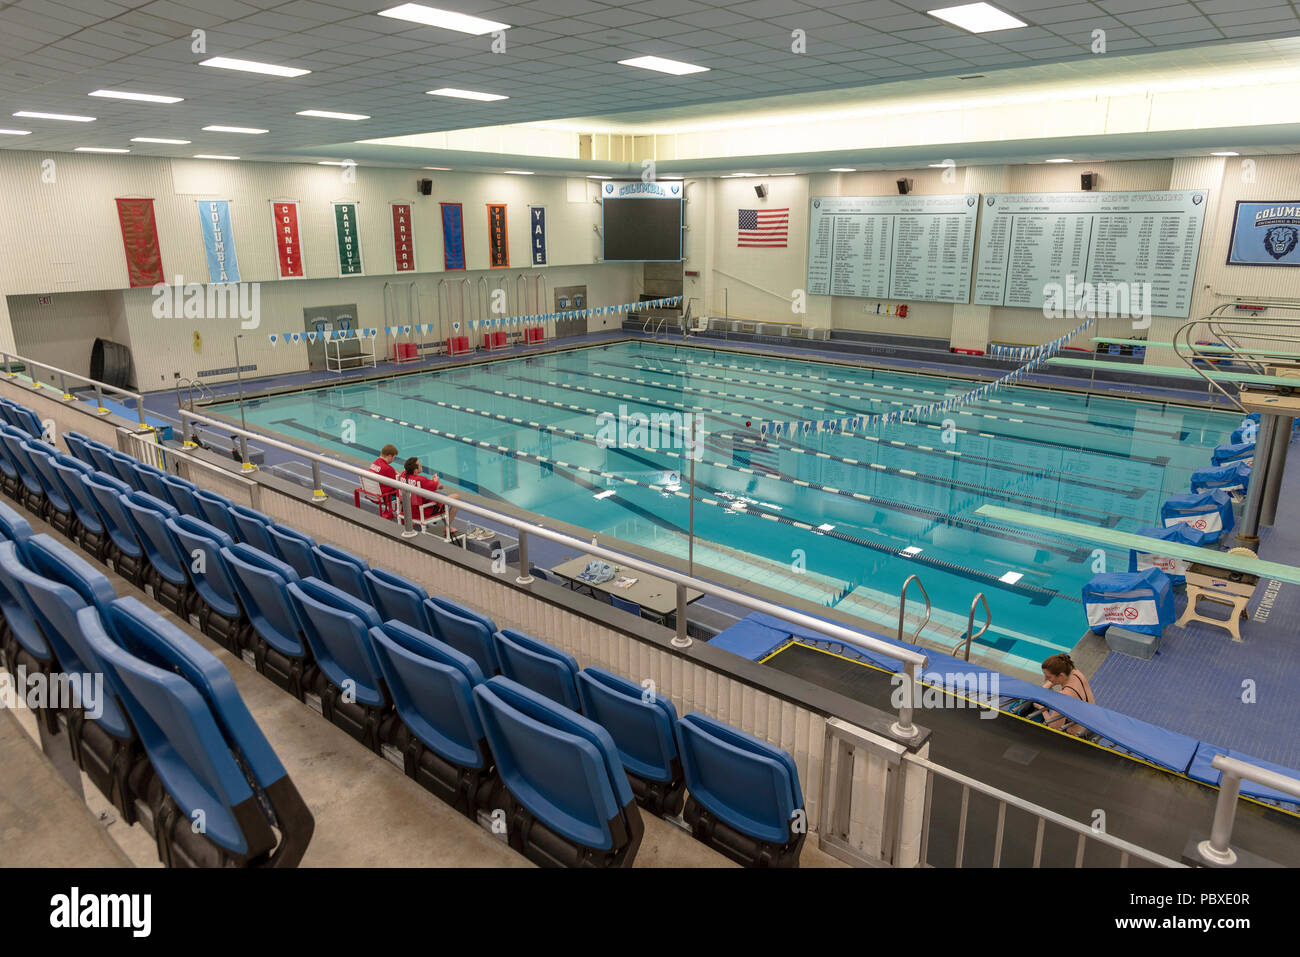 Swimming pool indoor lanes stock photos swimming pool indoor lanes stock images alamy for University of york swimming pool